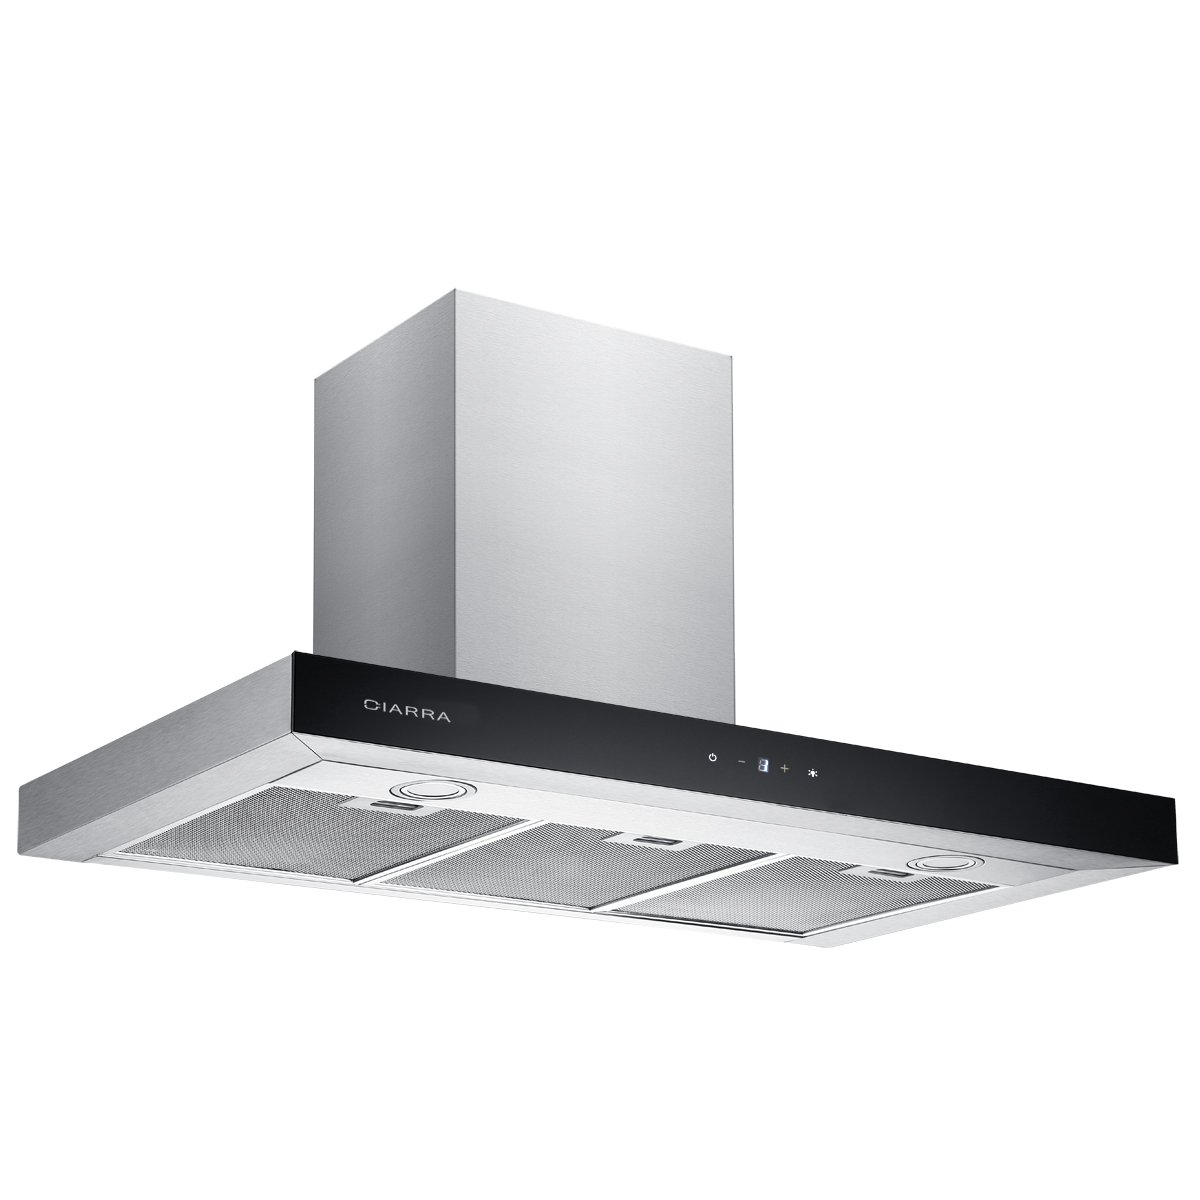 CIARRA 90cm Stainless Steel Touch Control Chimney Cooker Hood Range Hood Kitchen Extractor Fan [Energy Class C]